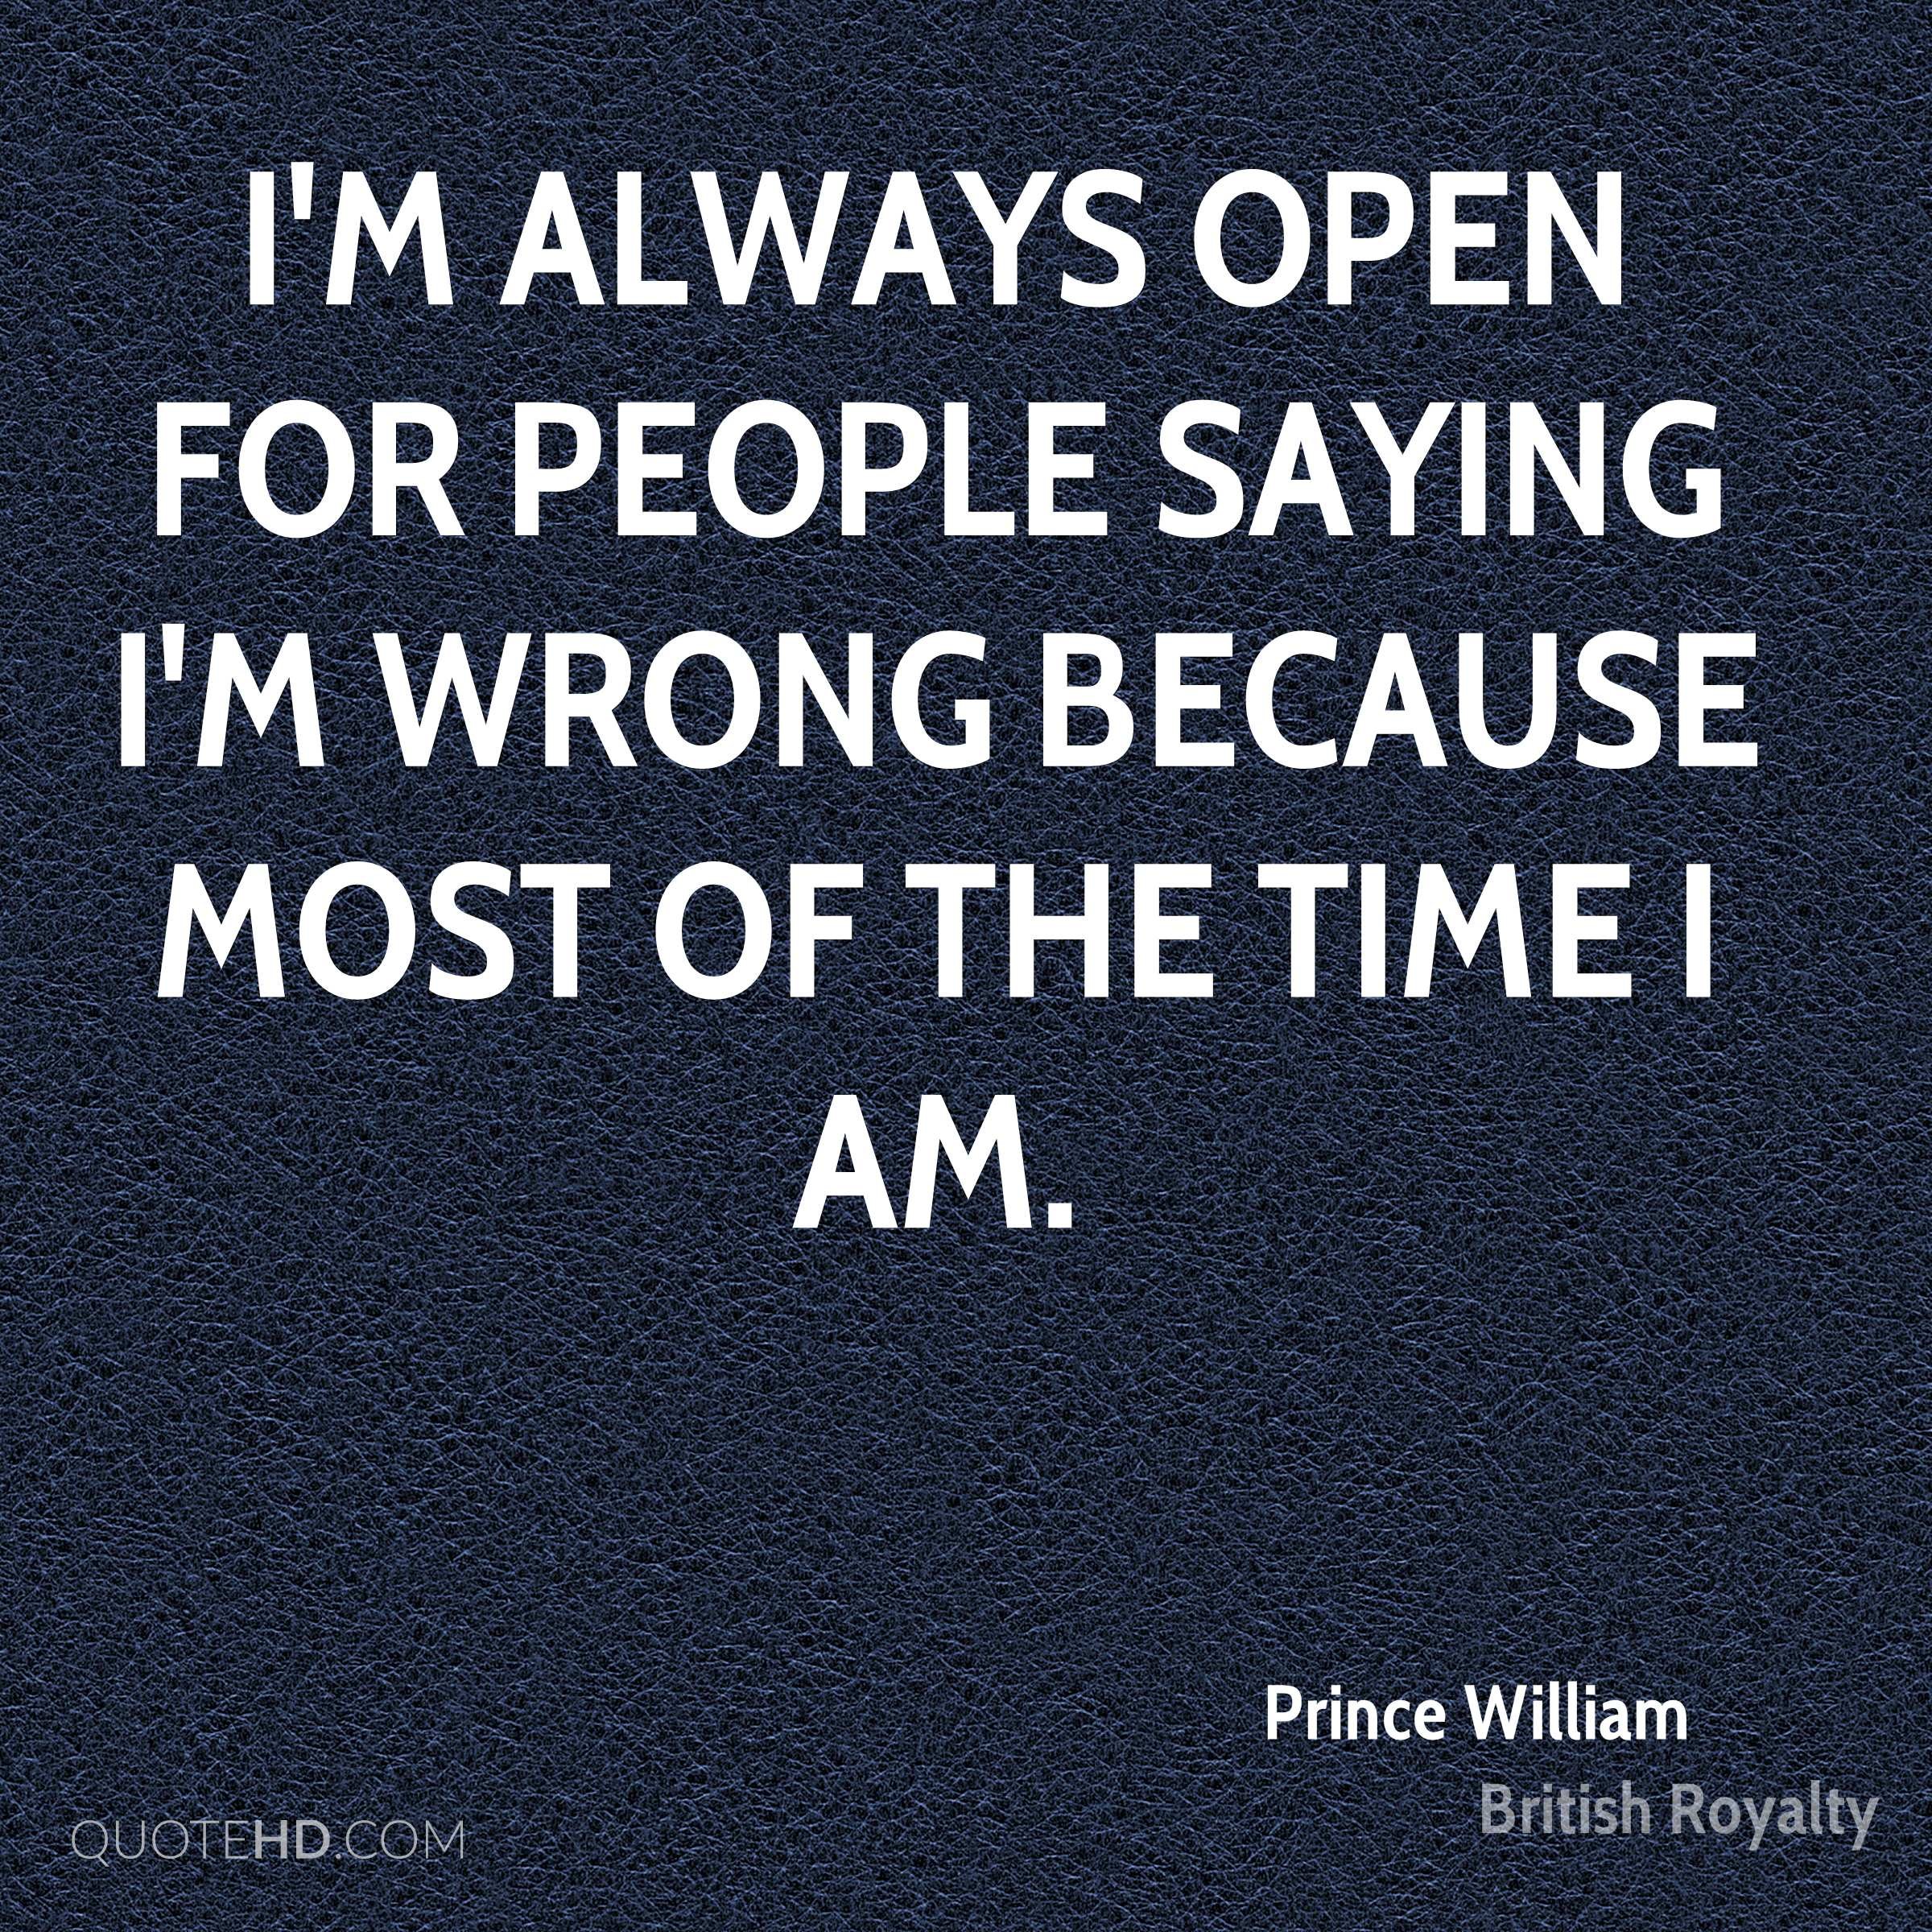 I'm always open for people saying I'm wrong because most of the time I am.